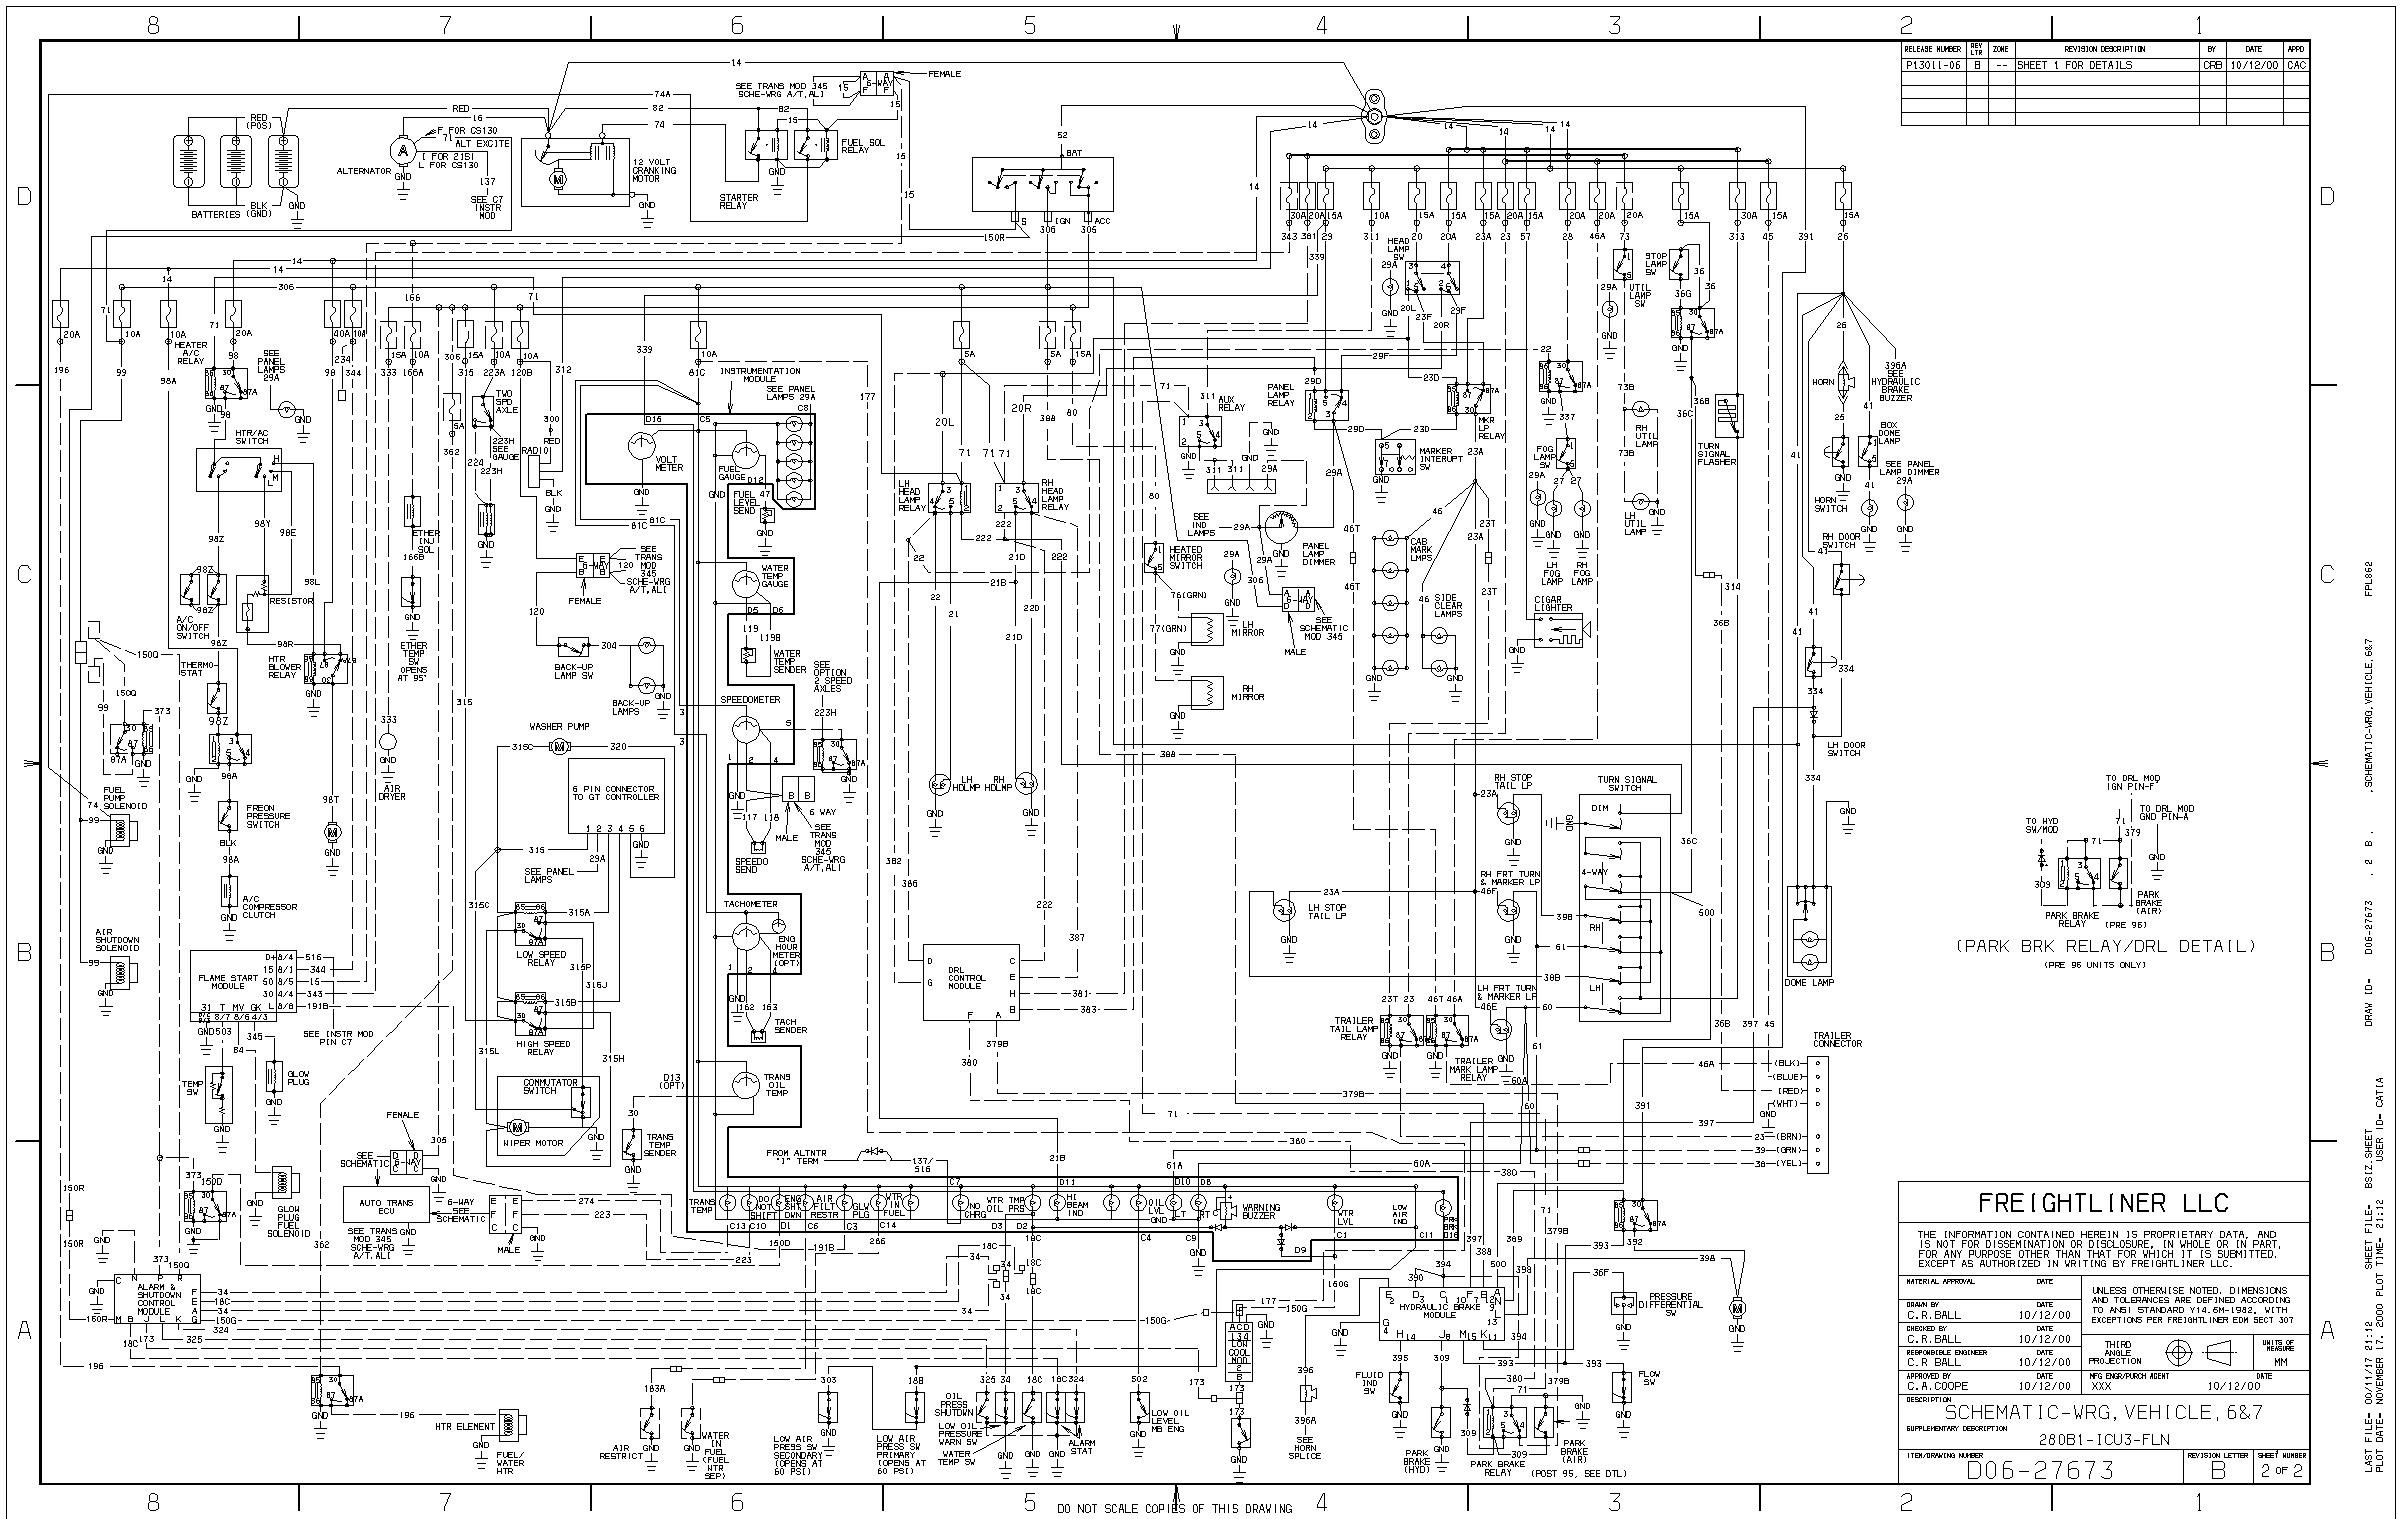 2000 sterling truck wiring diagram example electrical wiring diagram u2022 rh newwiringdiagram today Wiring Diagram 2000 Sterling Dump Truck Trailer Plug Wiring Diagram for 2000 Sterling Truck